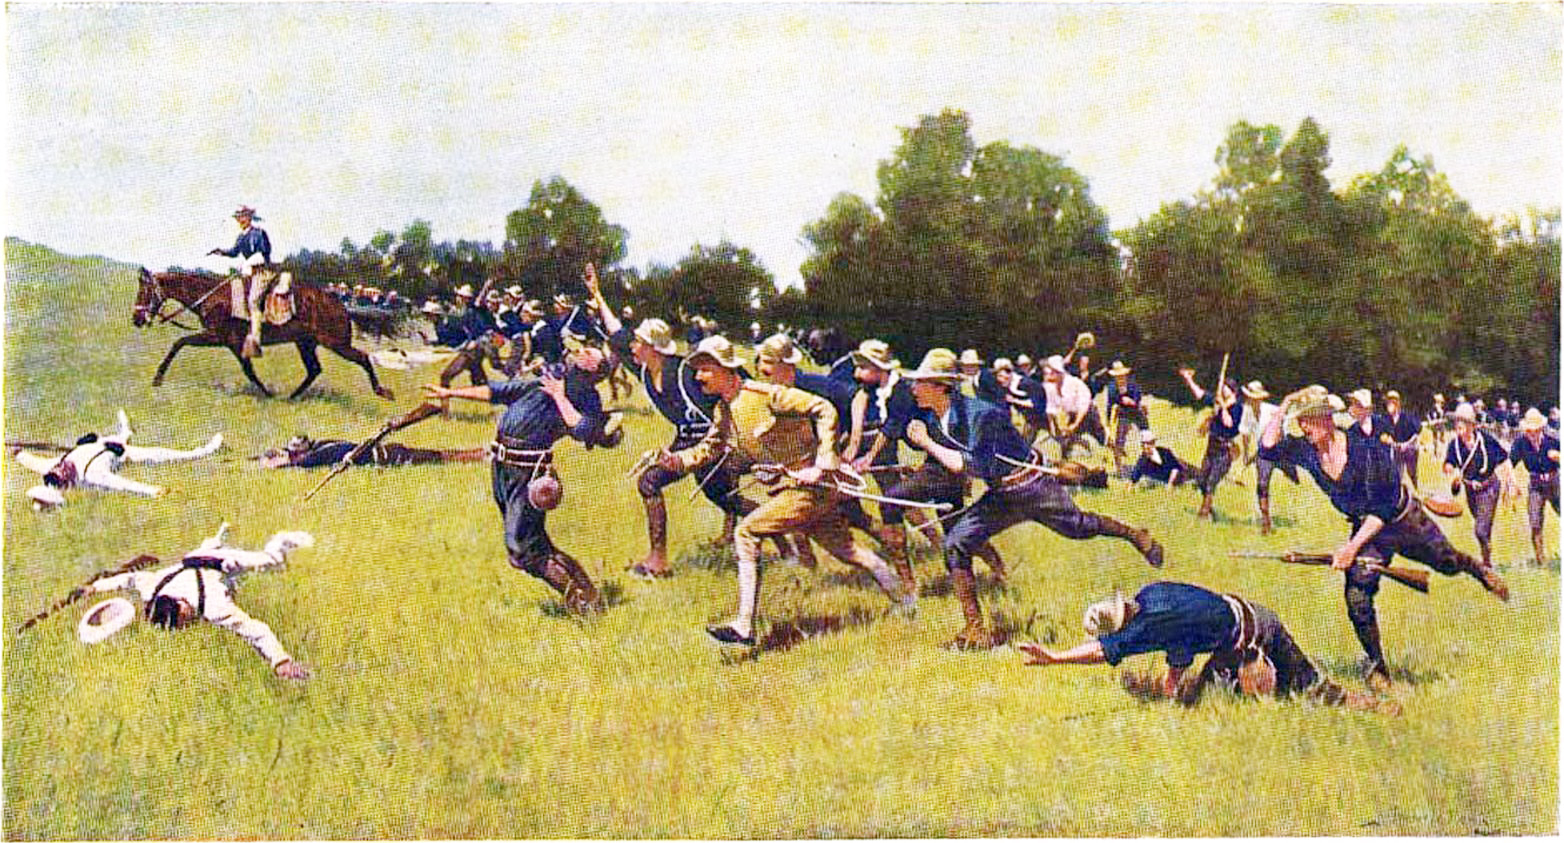 Charge_of_the_Rough_Riders_at_San_Juan_Hill.JPG